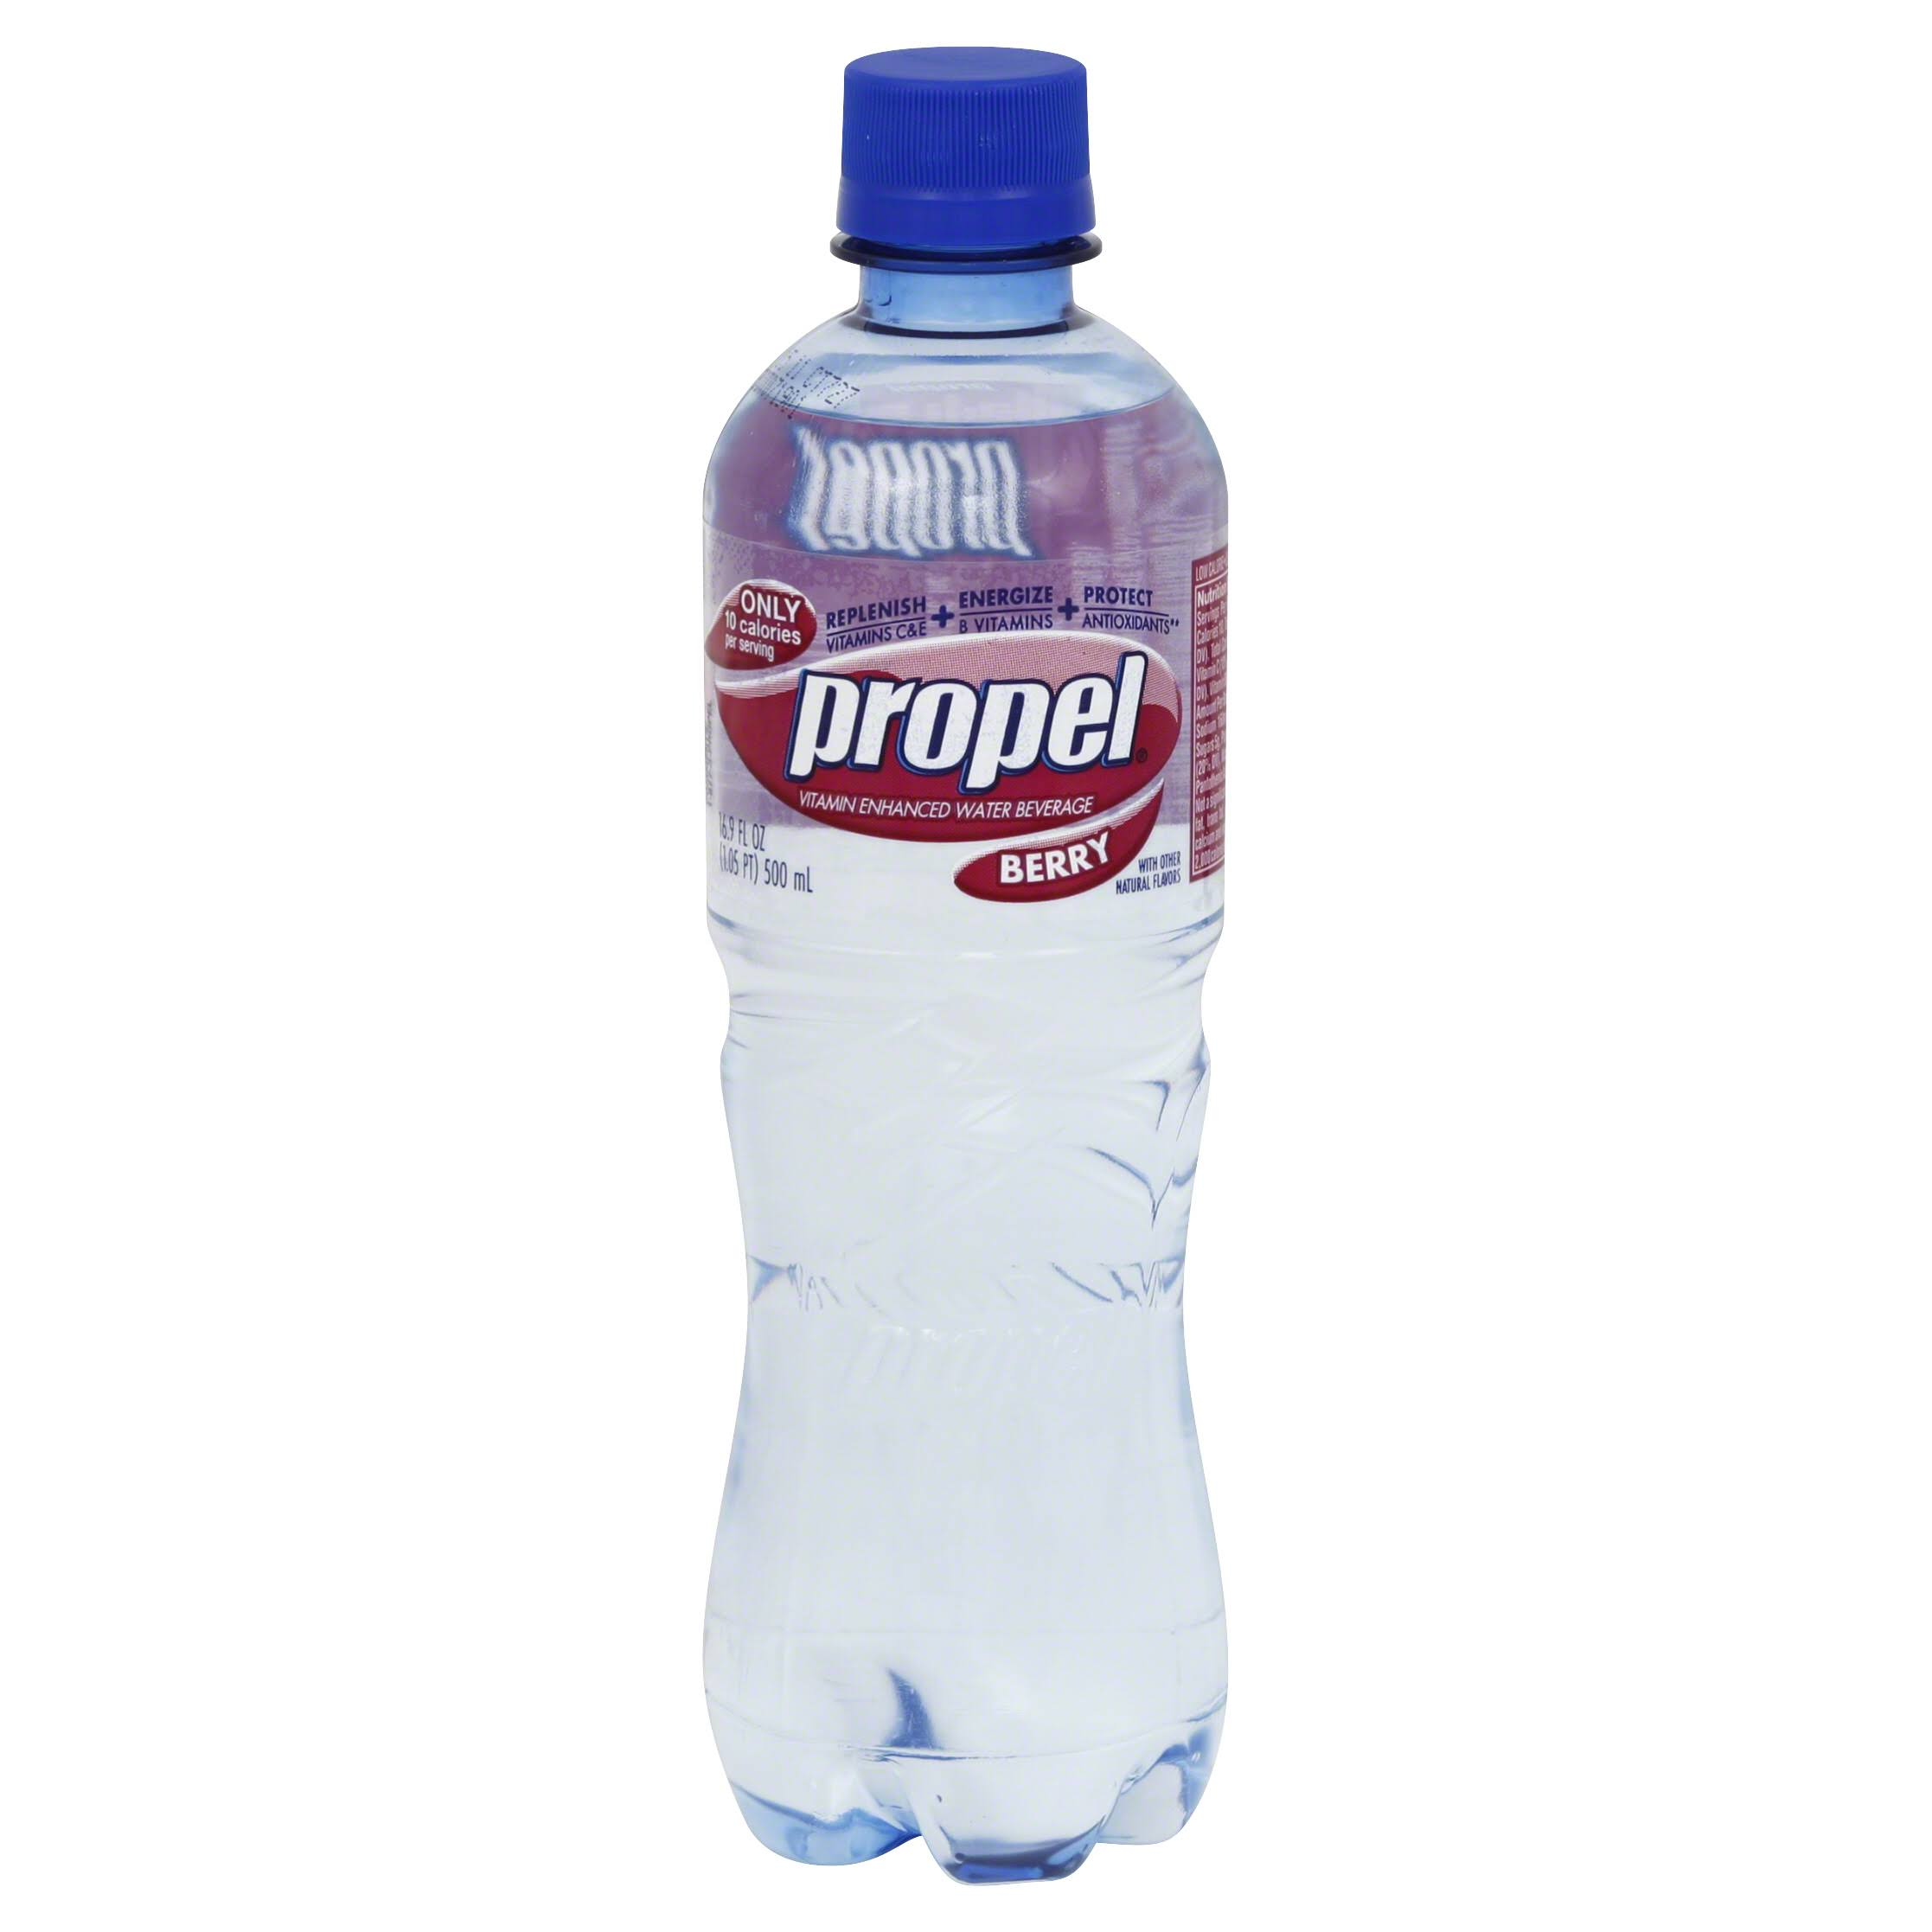 Propel Water Beverage, with Vitamins, Berry - 16.9 fl oz